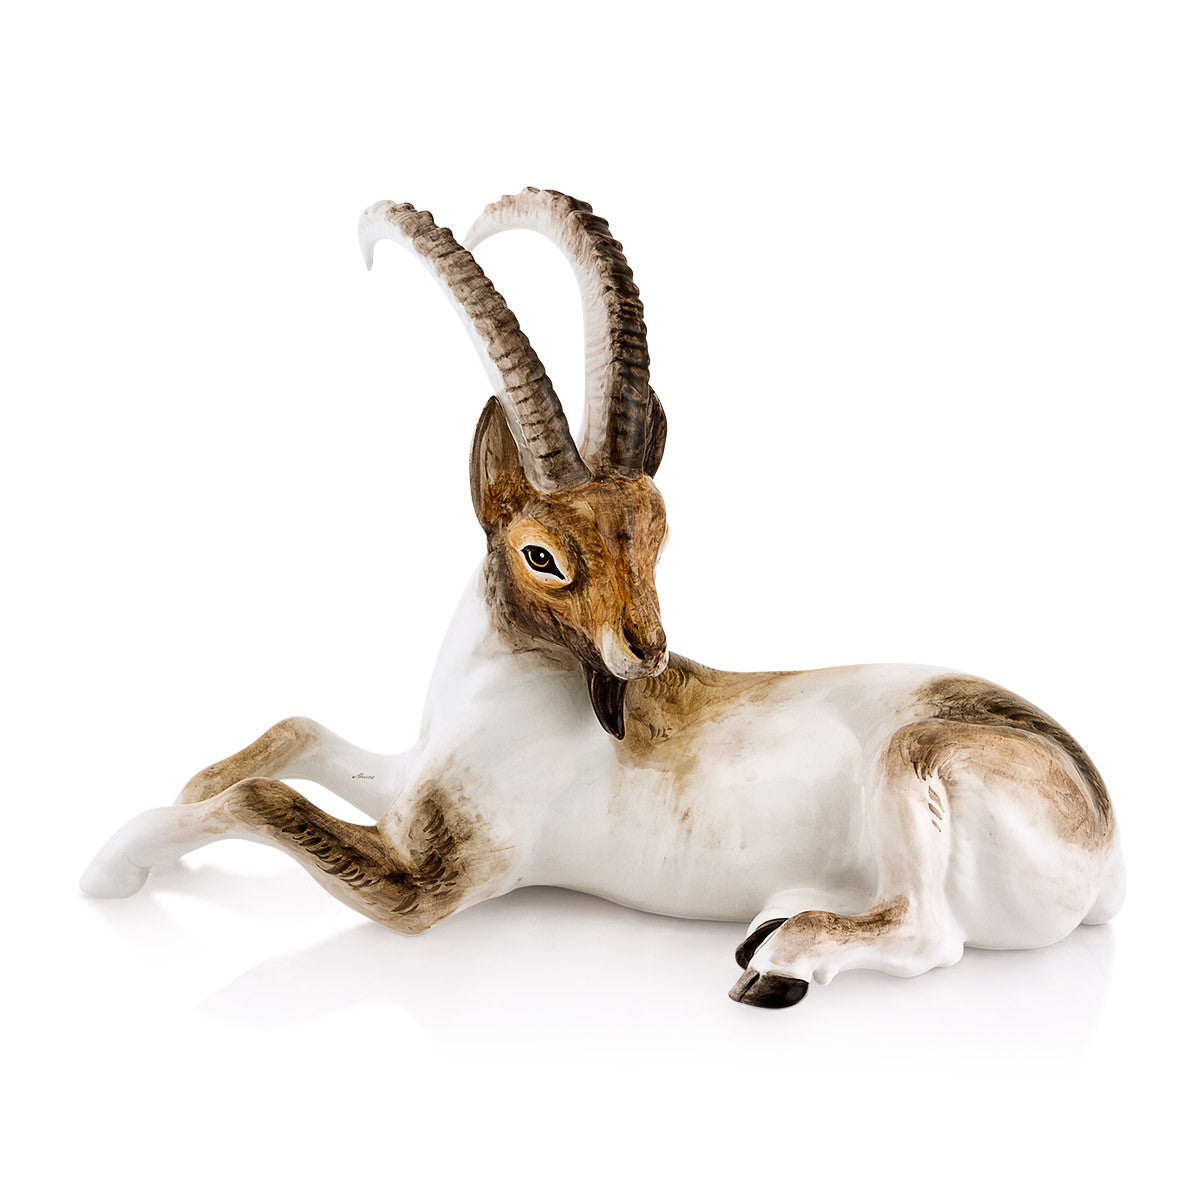 Ceramic ibex animal statue with life-like details